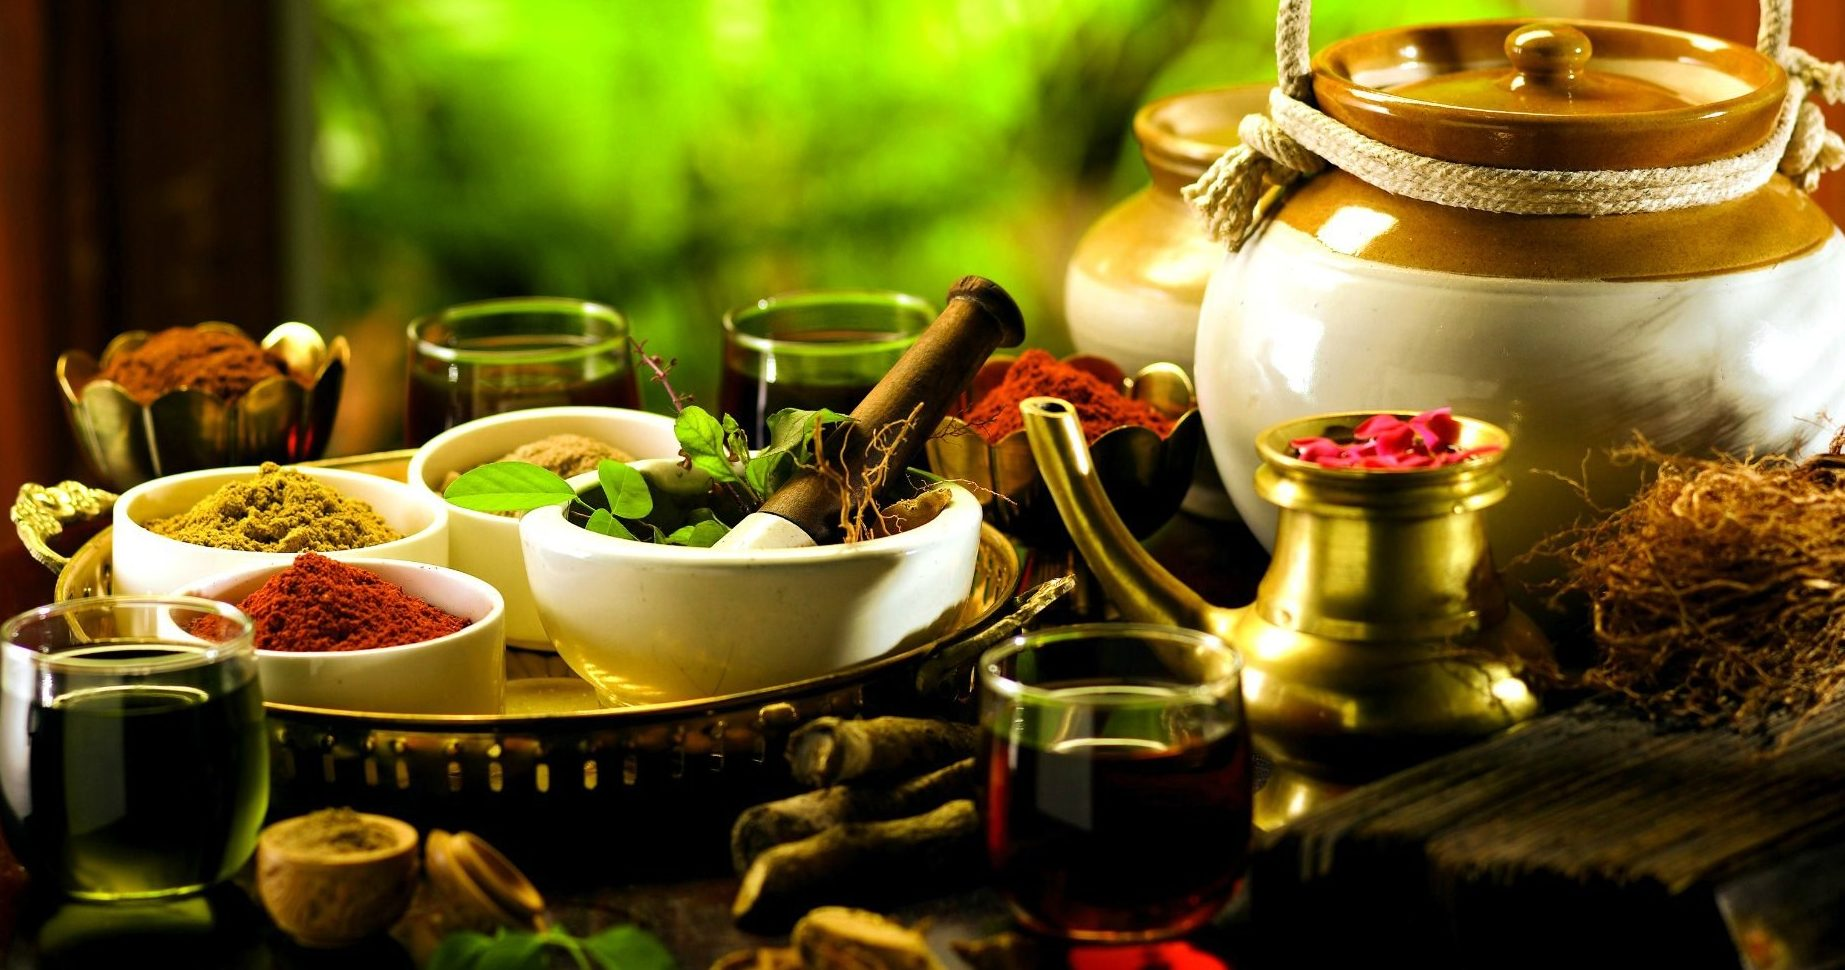 Best Ayurveda Product 2020: Shopping Guide & Review